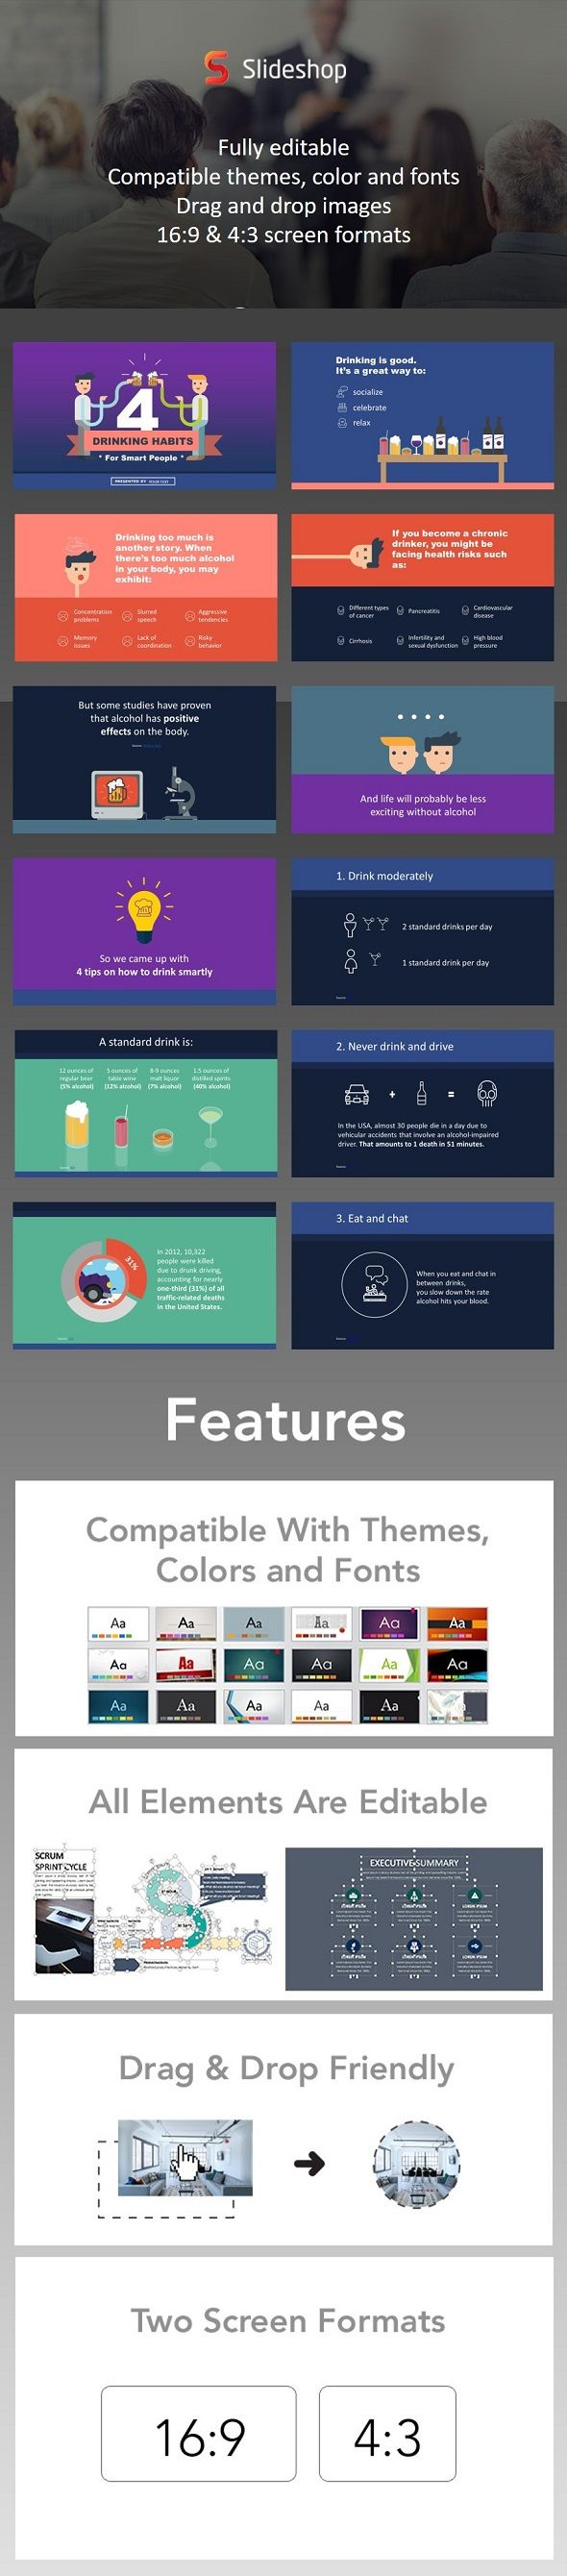 493 best businesses powerpoint presentation images on pinterest 4 drinking habits for smart people toneelgroepblik Image collections